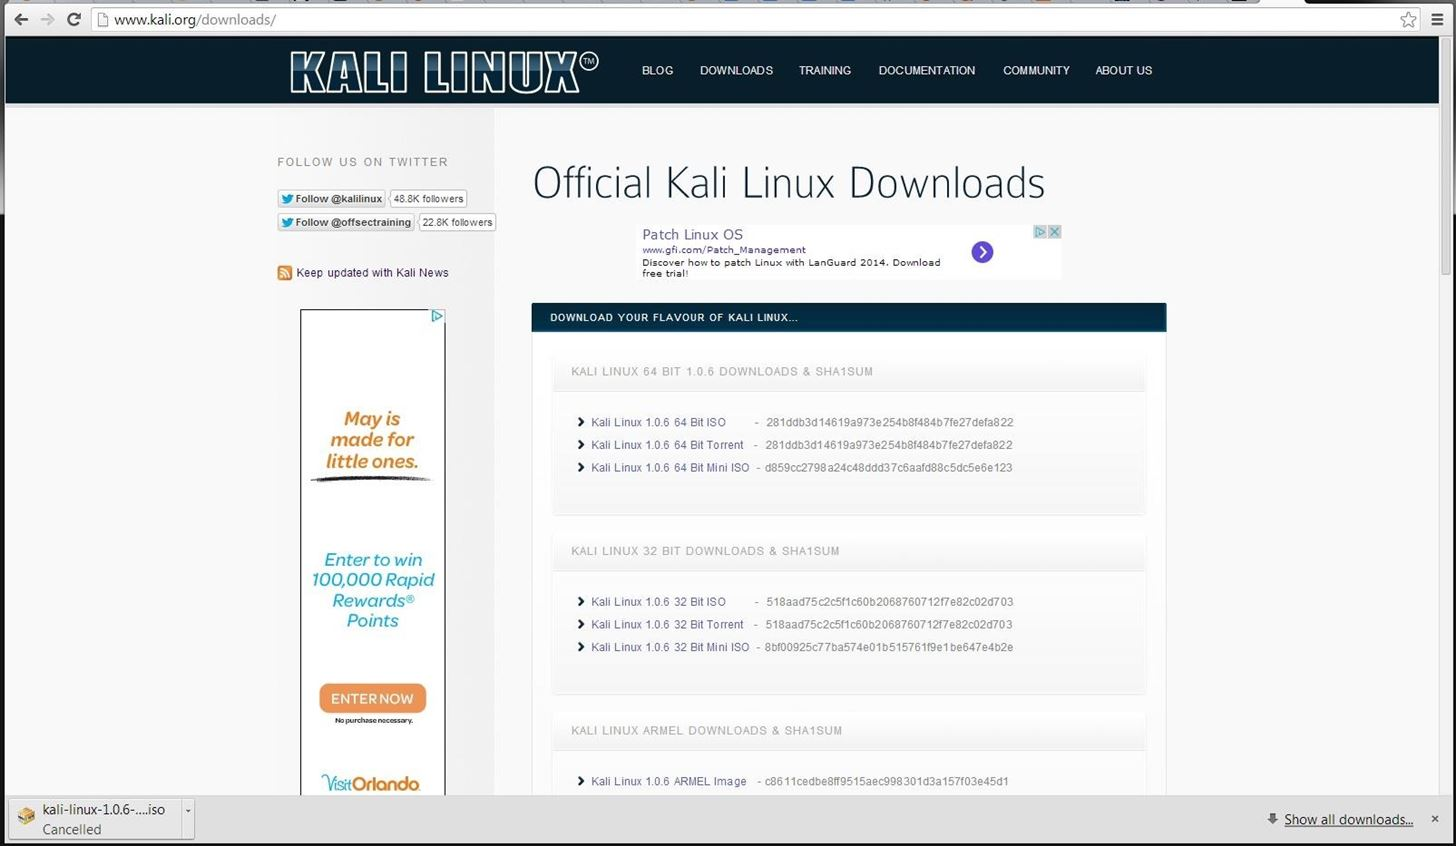 How to Get Started with Kali Linux (2014 Version)